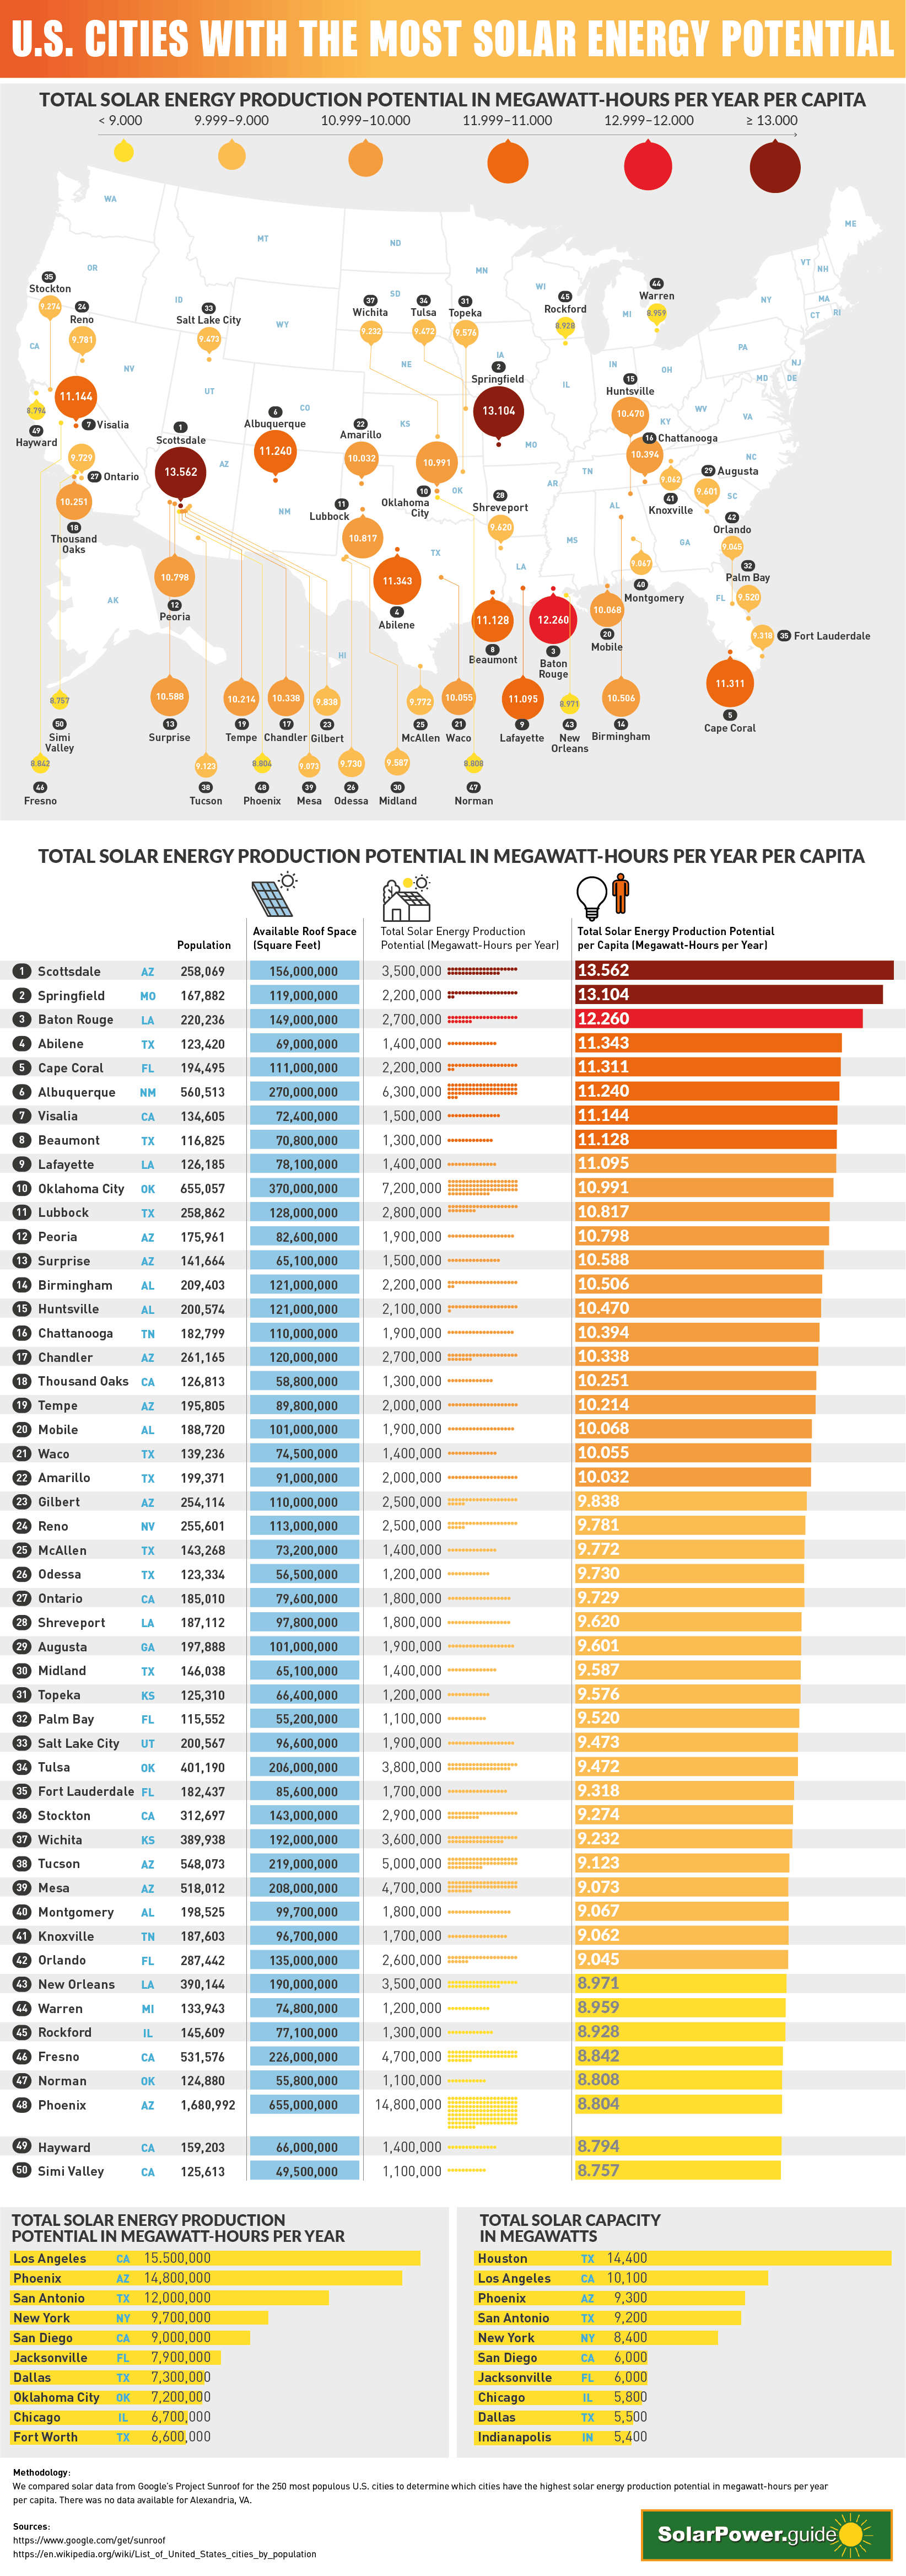 U.S. Cities With the Most Solar Potential